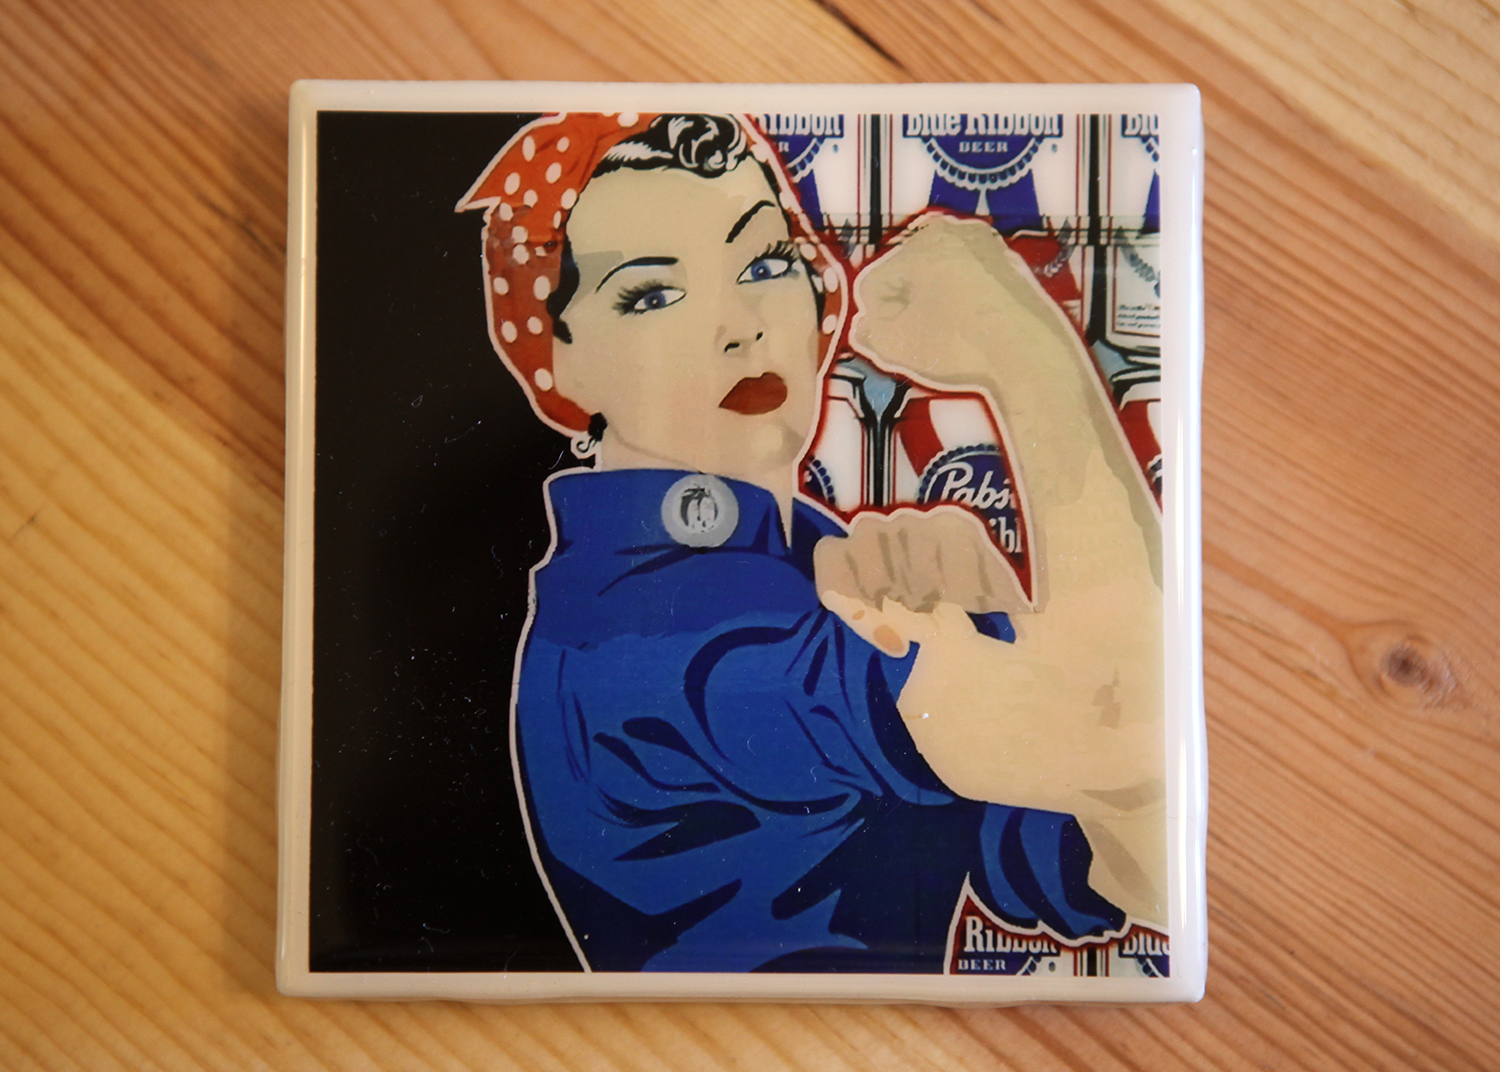 'We can do it' tile coaster, $10.